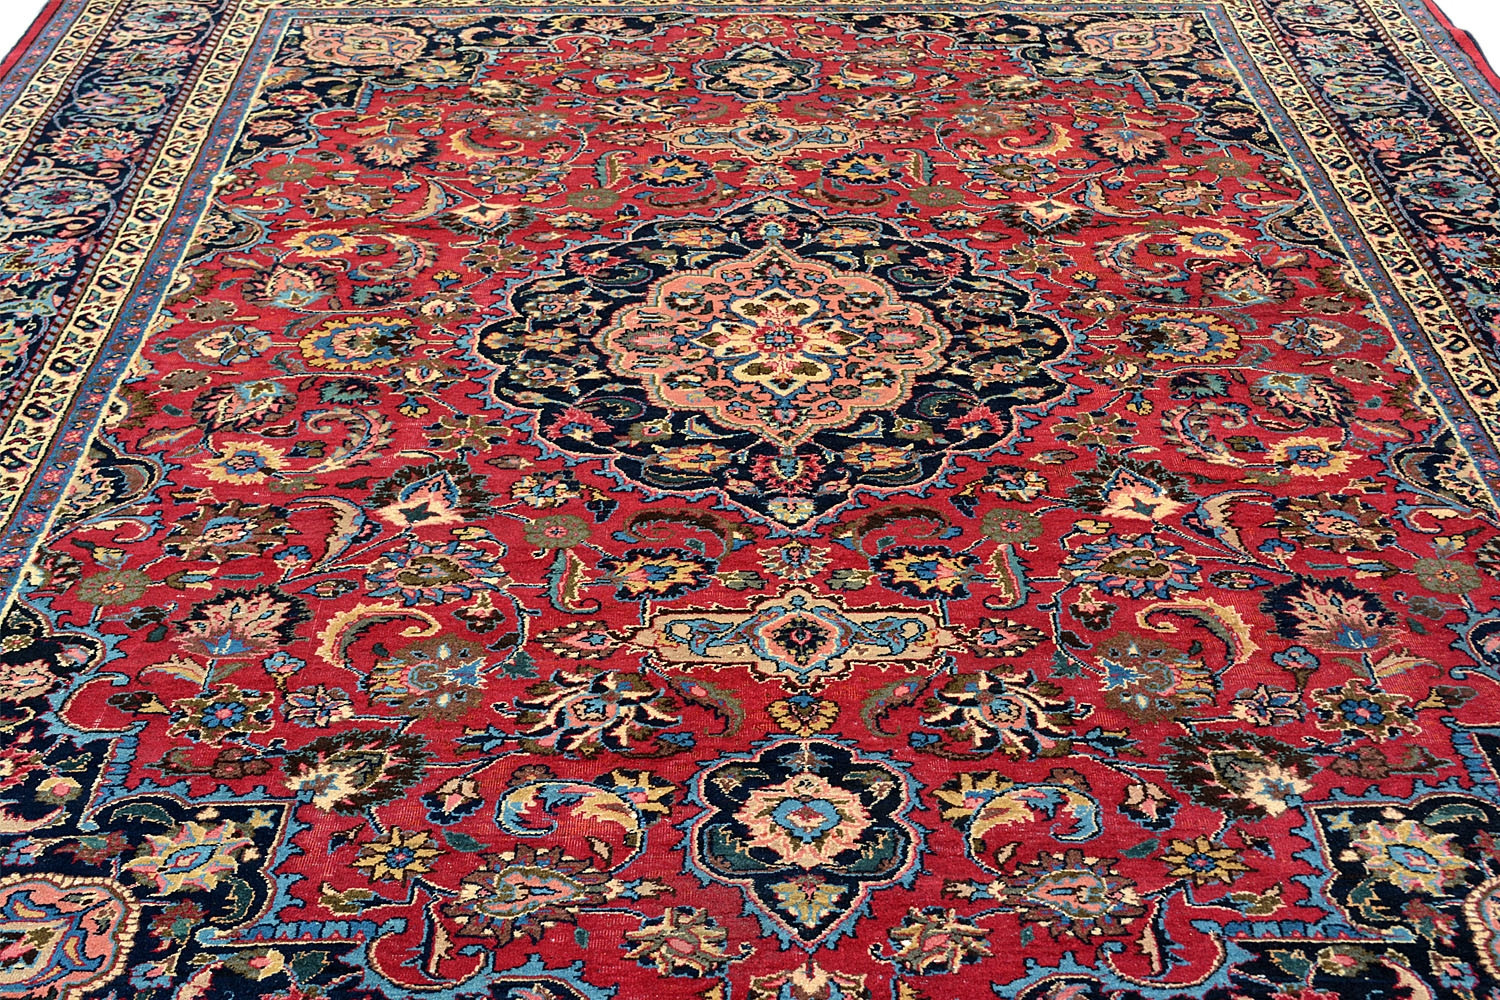 Sho Area Rugs Online And Spread The Color On Floor With